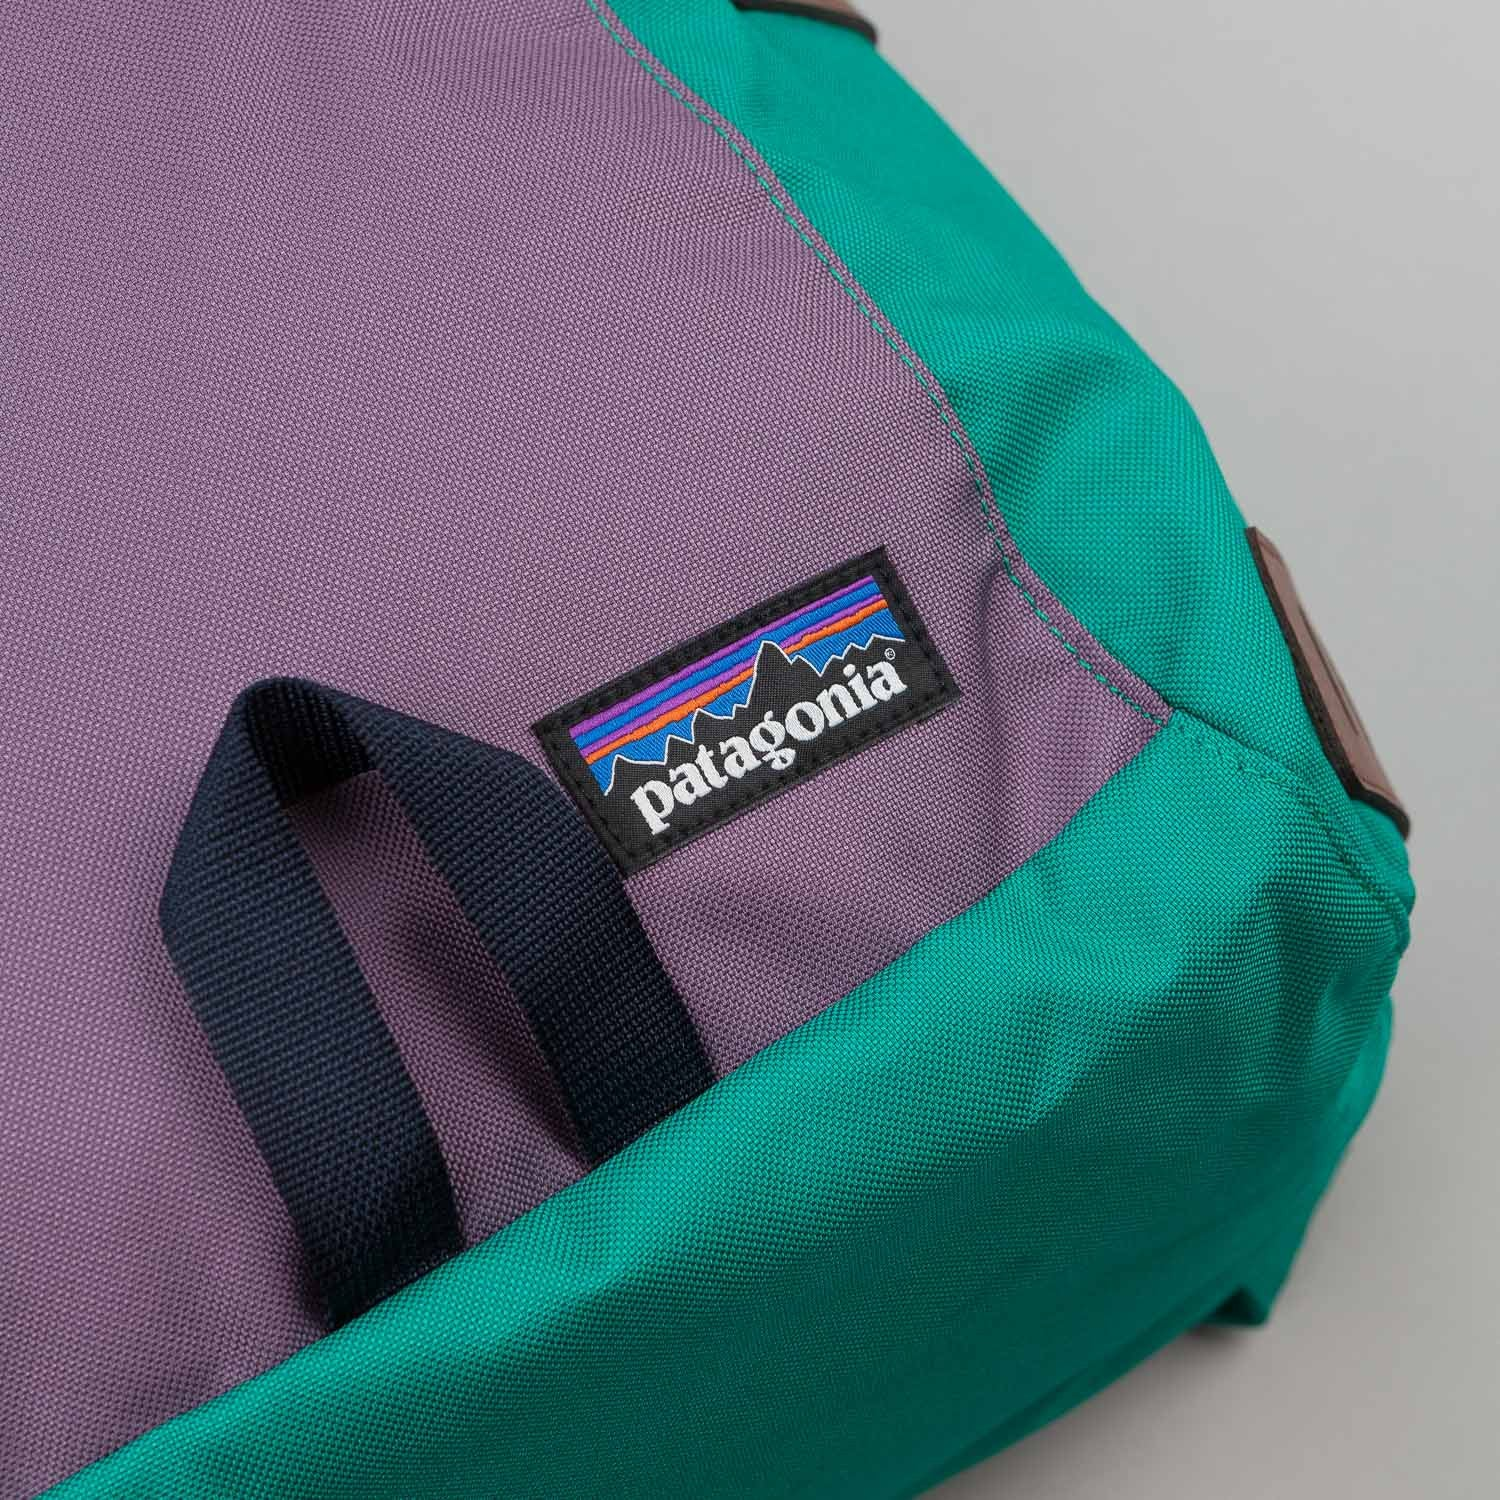 Patagonia Ironwood Backpack - Emerald